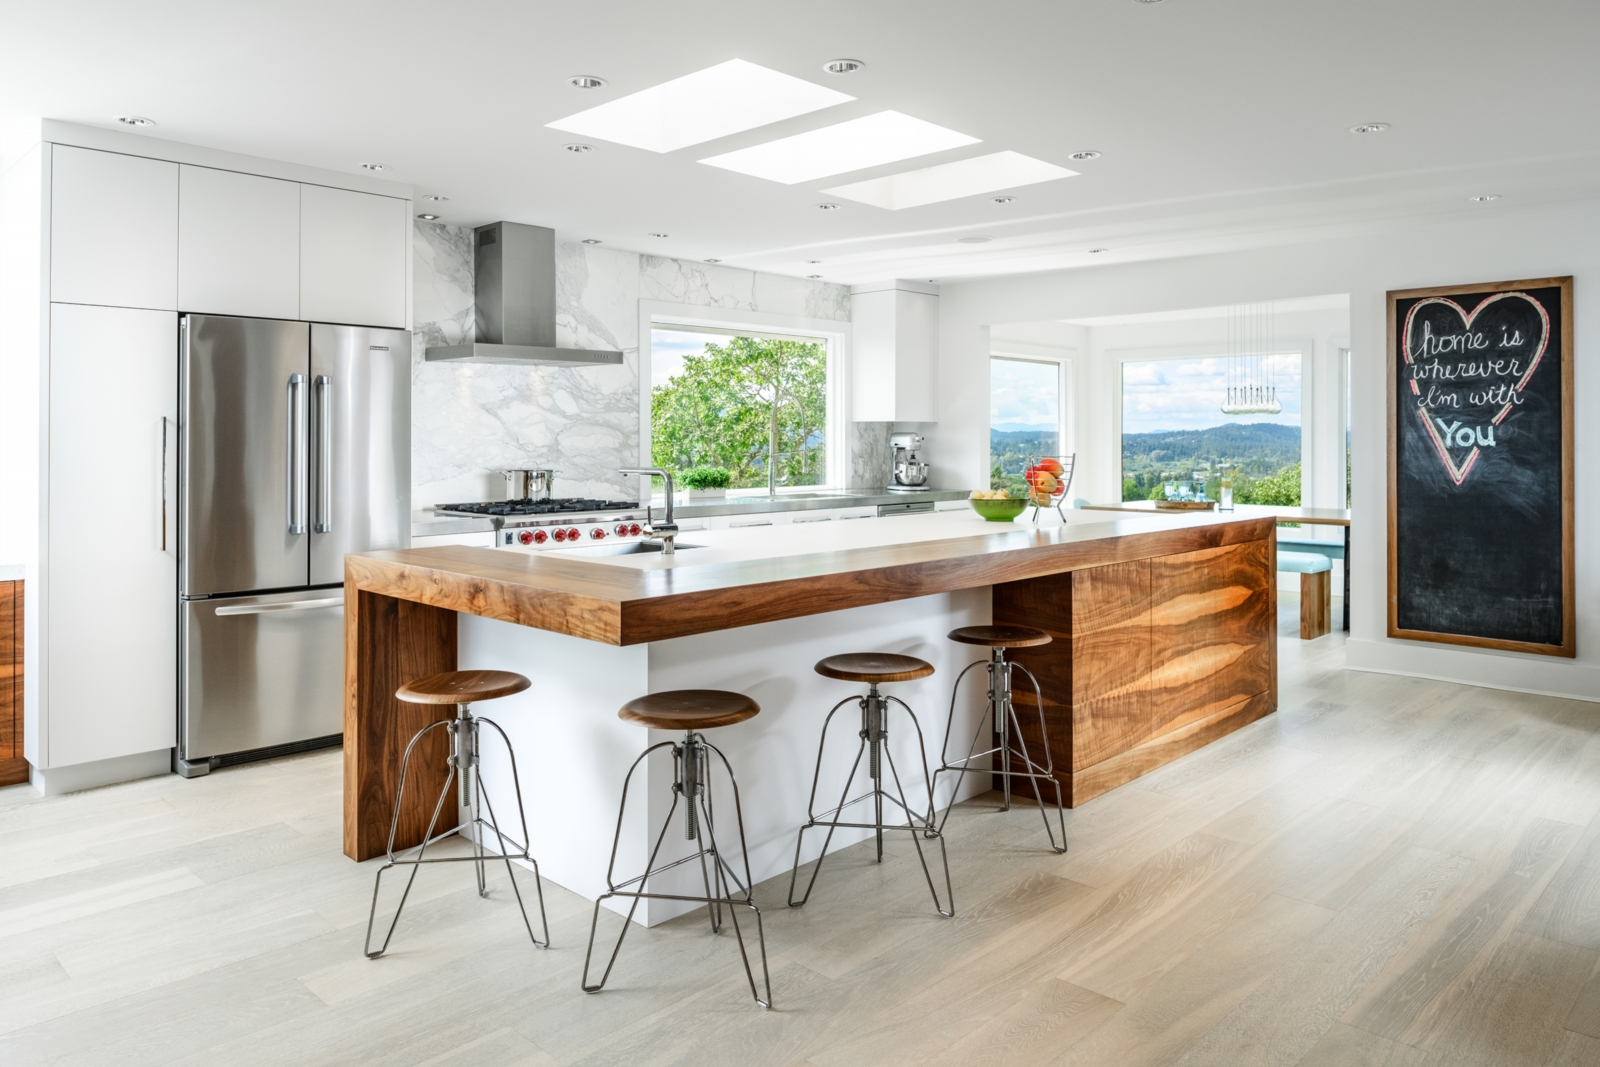 Kitchen Design Trends 2015 the 2015 kitchen: what's in, what's out | home design & decor